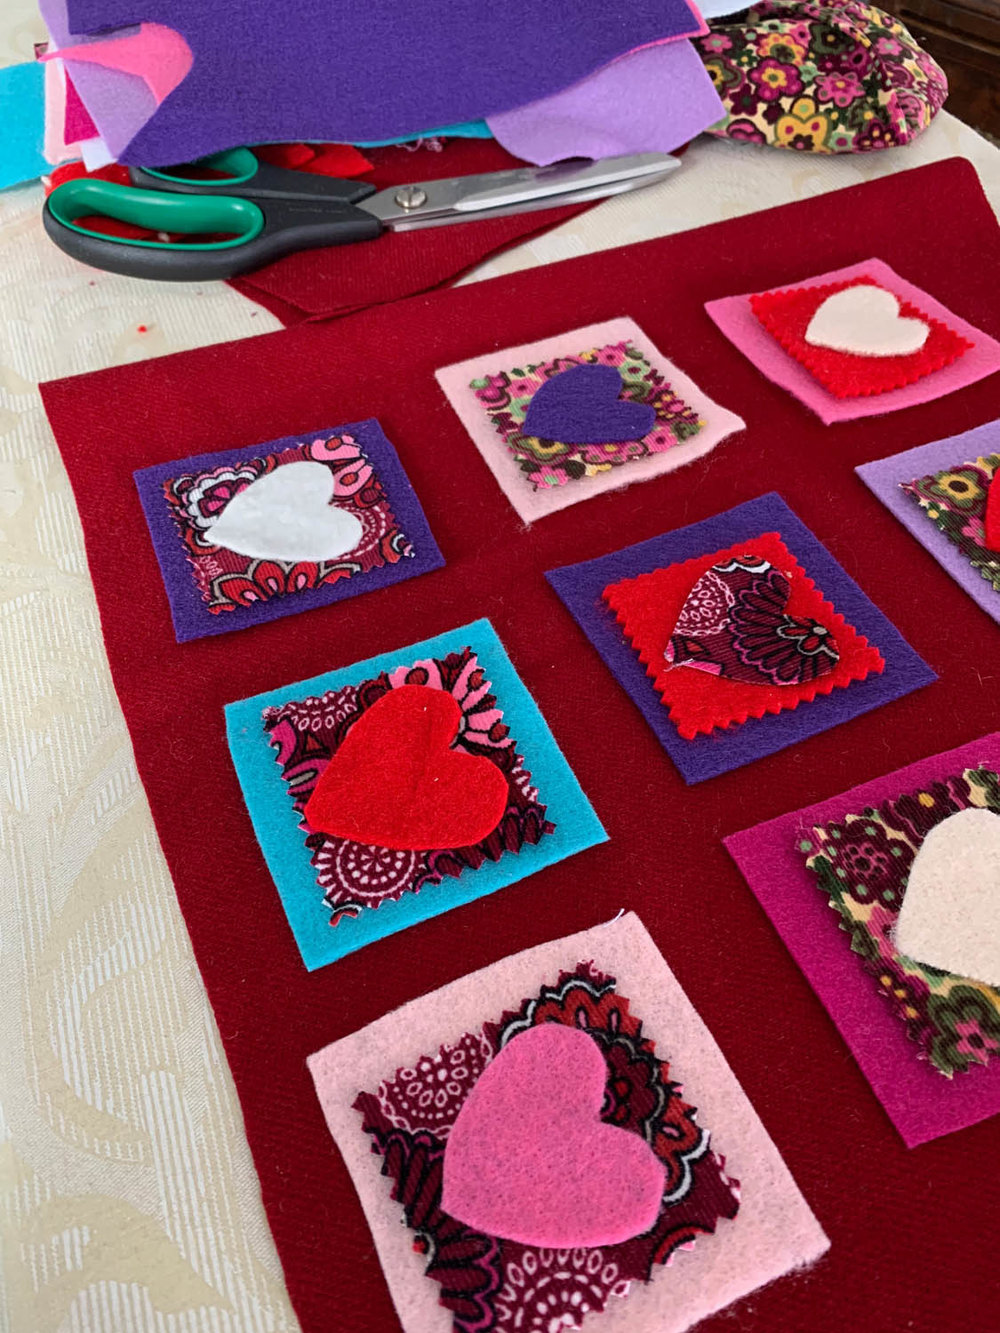 Auditioning felt heart shapes and fabric squares to make a DIY Valentine's Day pillow